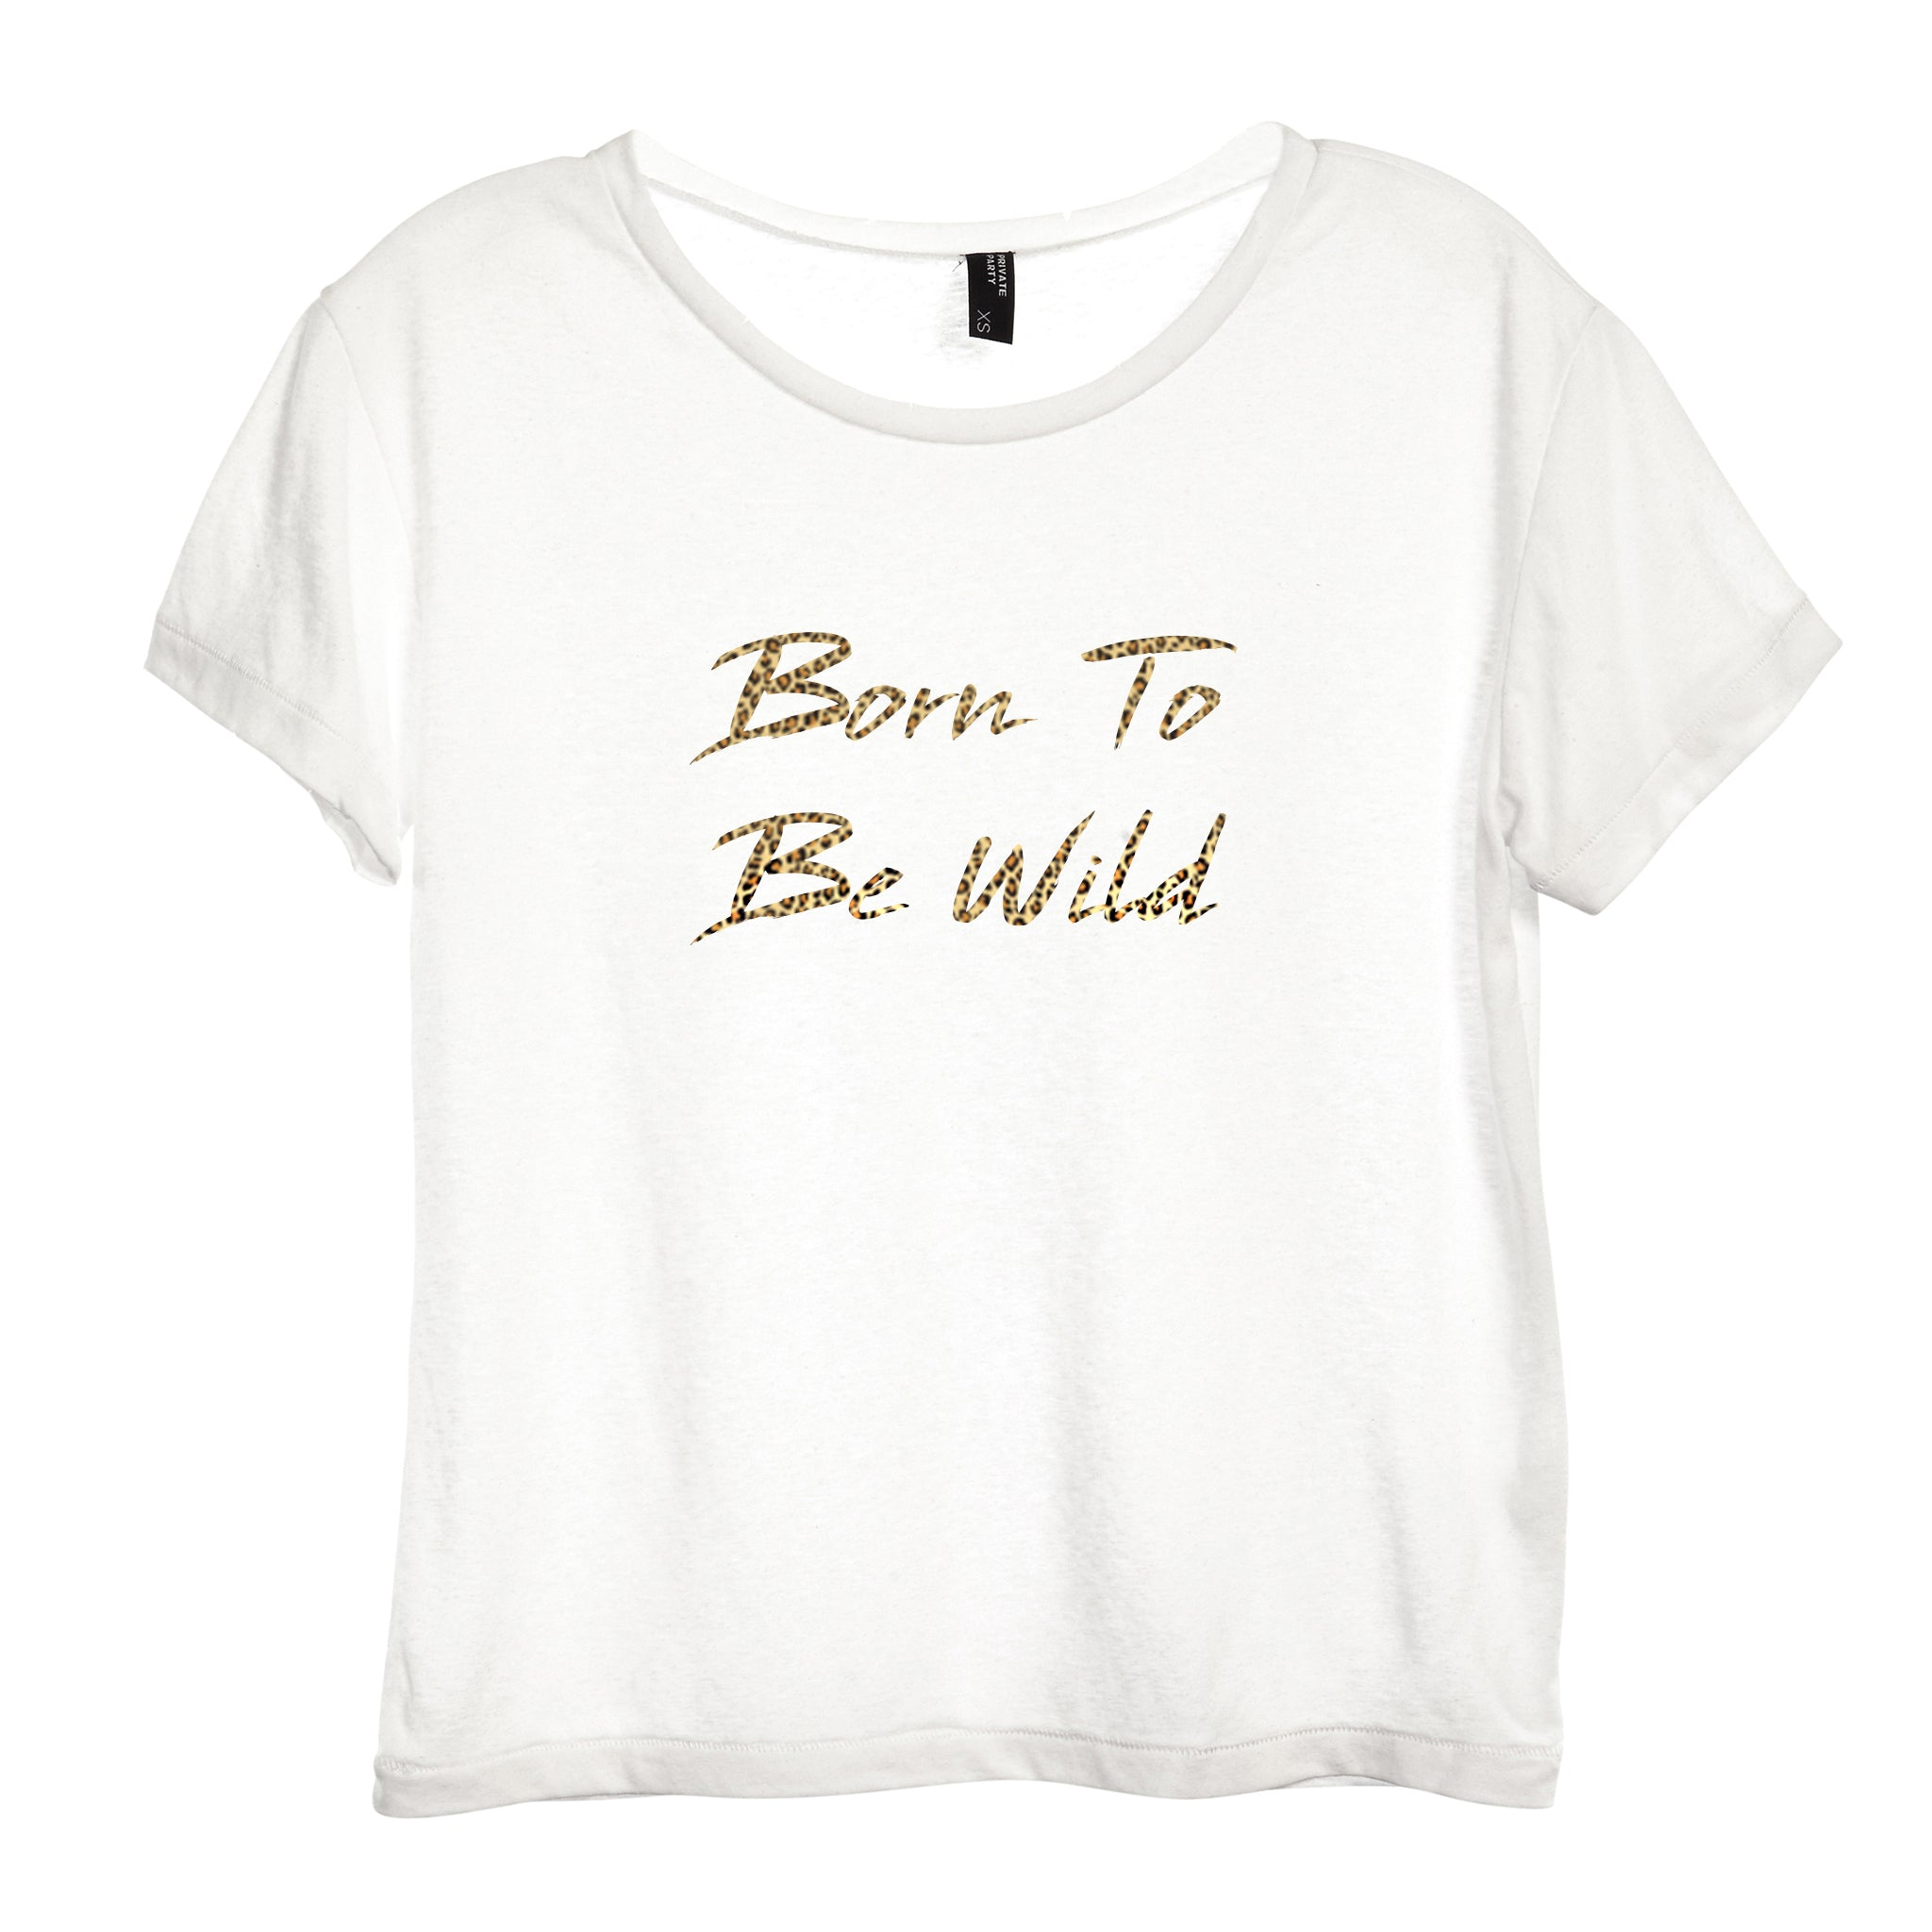 BORN TO BE WILD W/ CHEETAH TEXT [DISTRESSED WOMEN'S 'BABY TEE']